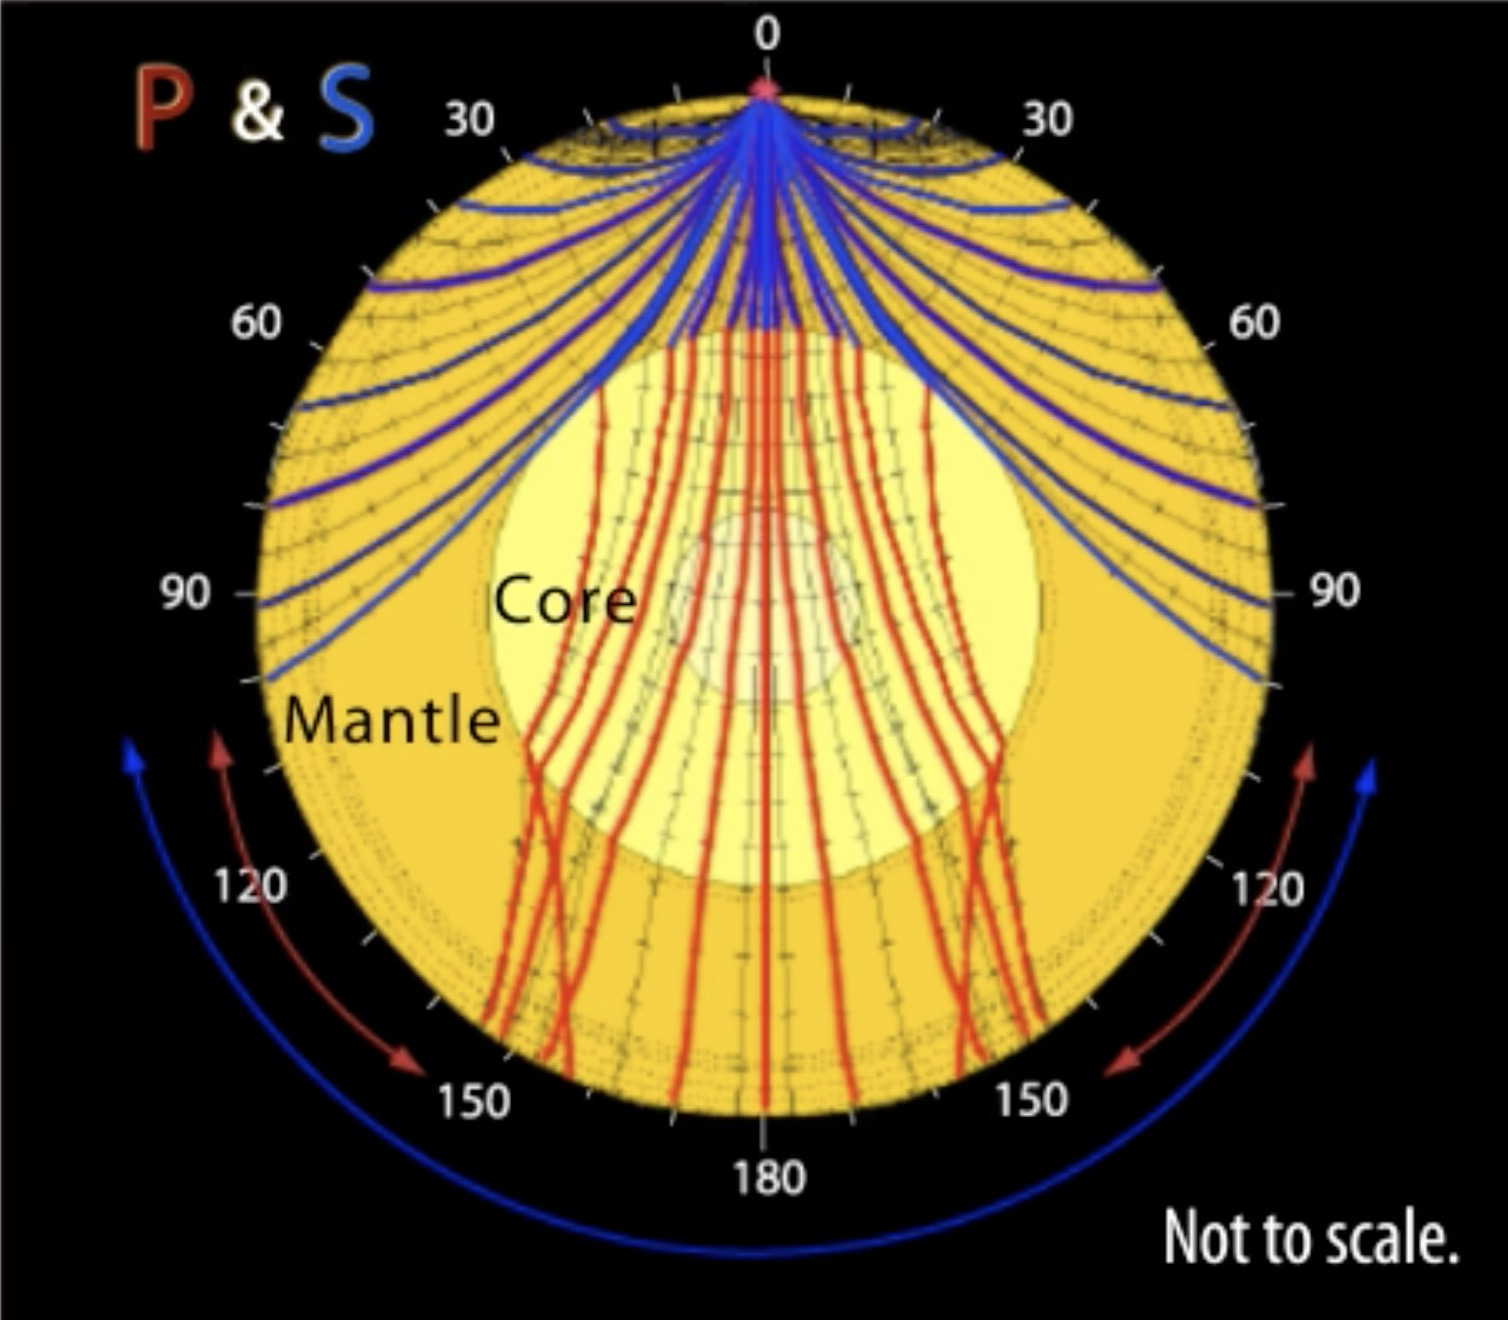 How Do We Really Know What S Inside The Earth Imaging Earth S Interior With Seismic Waves